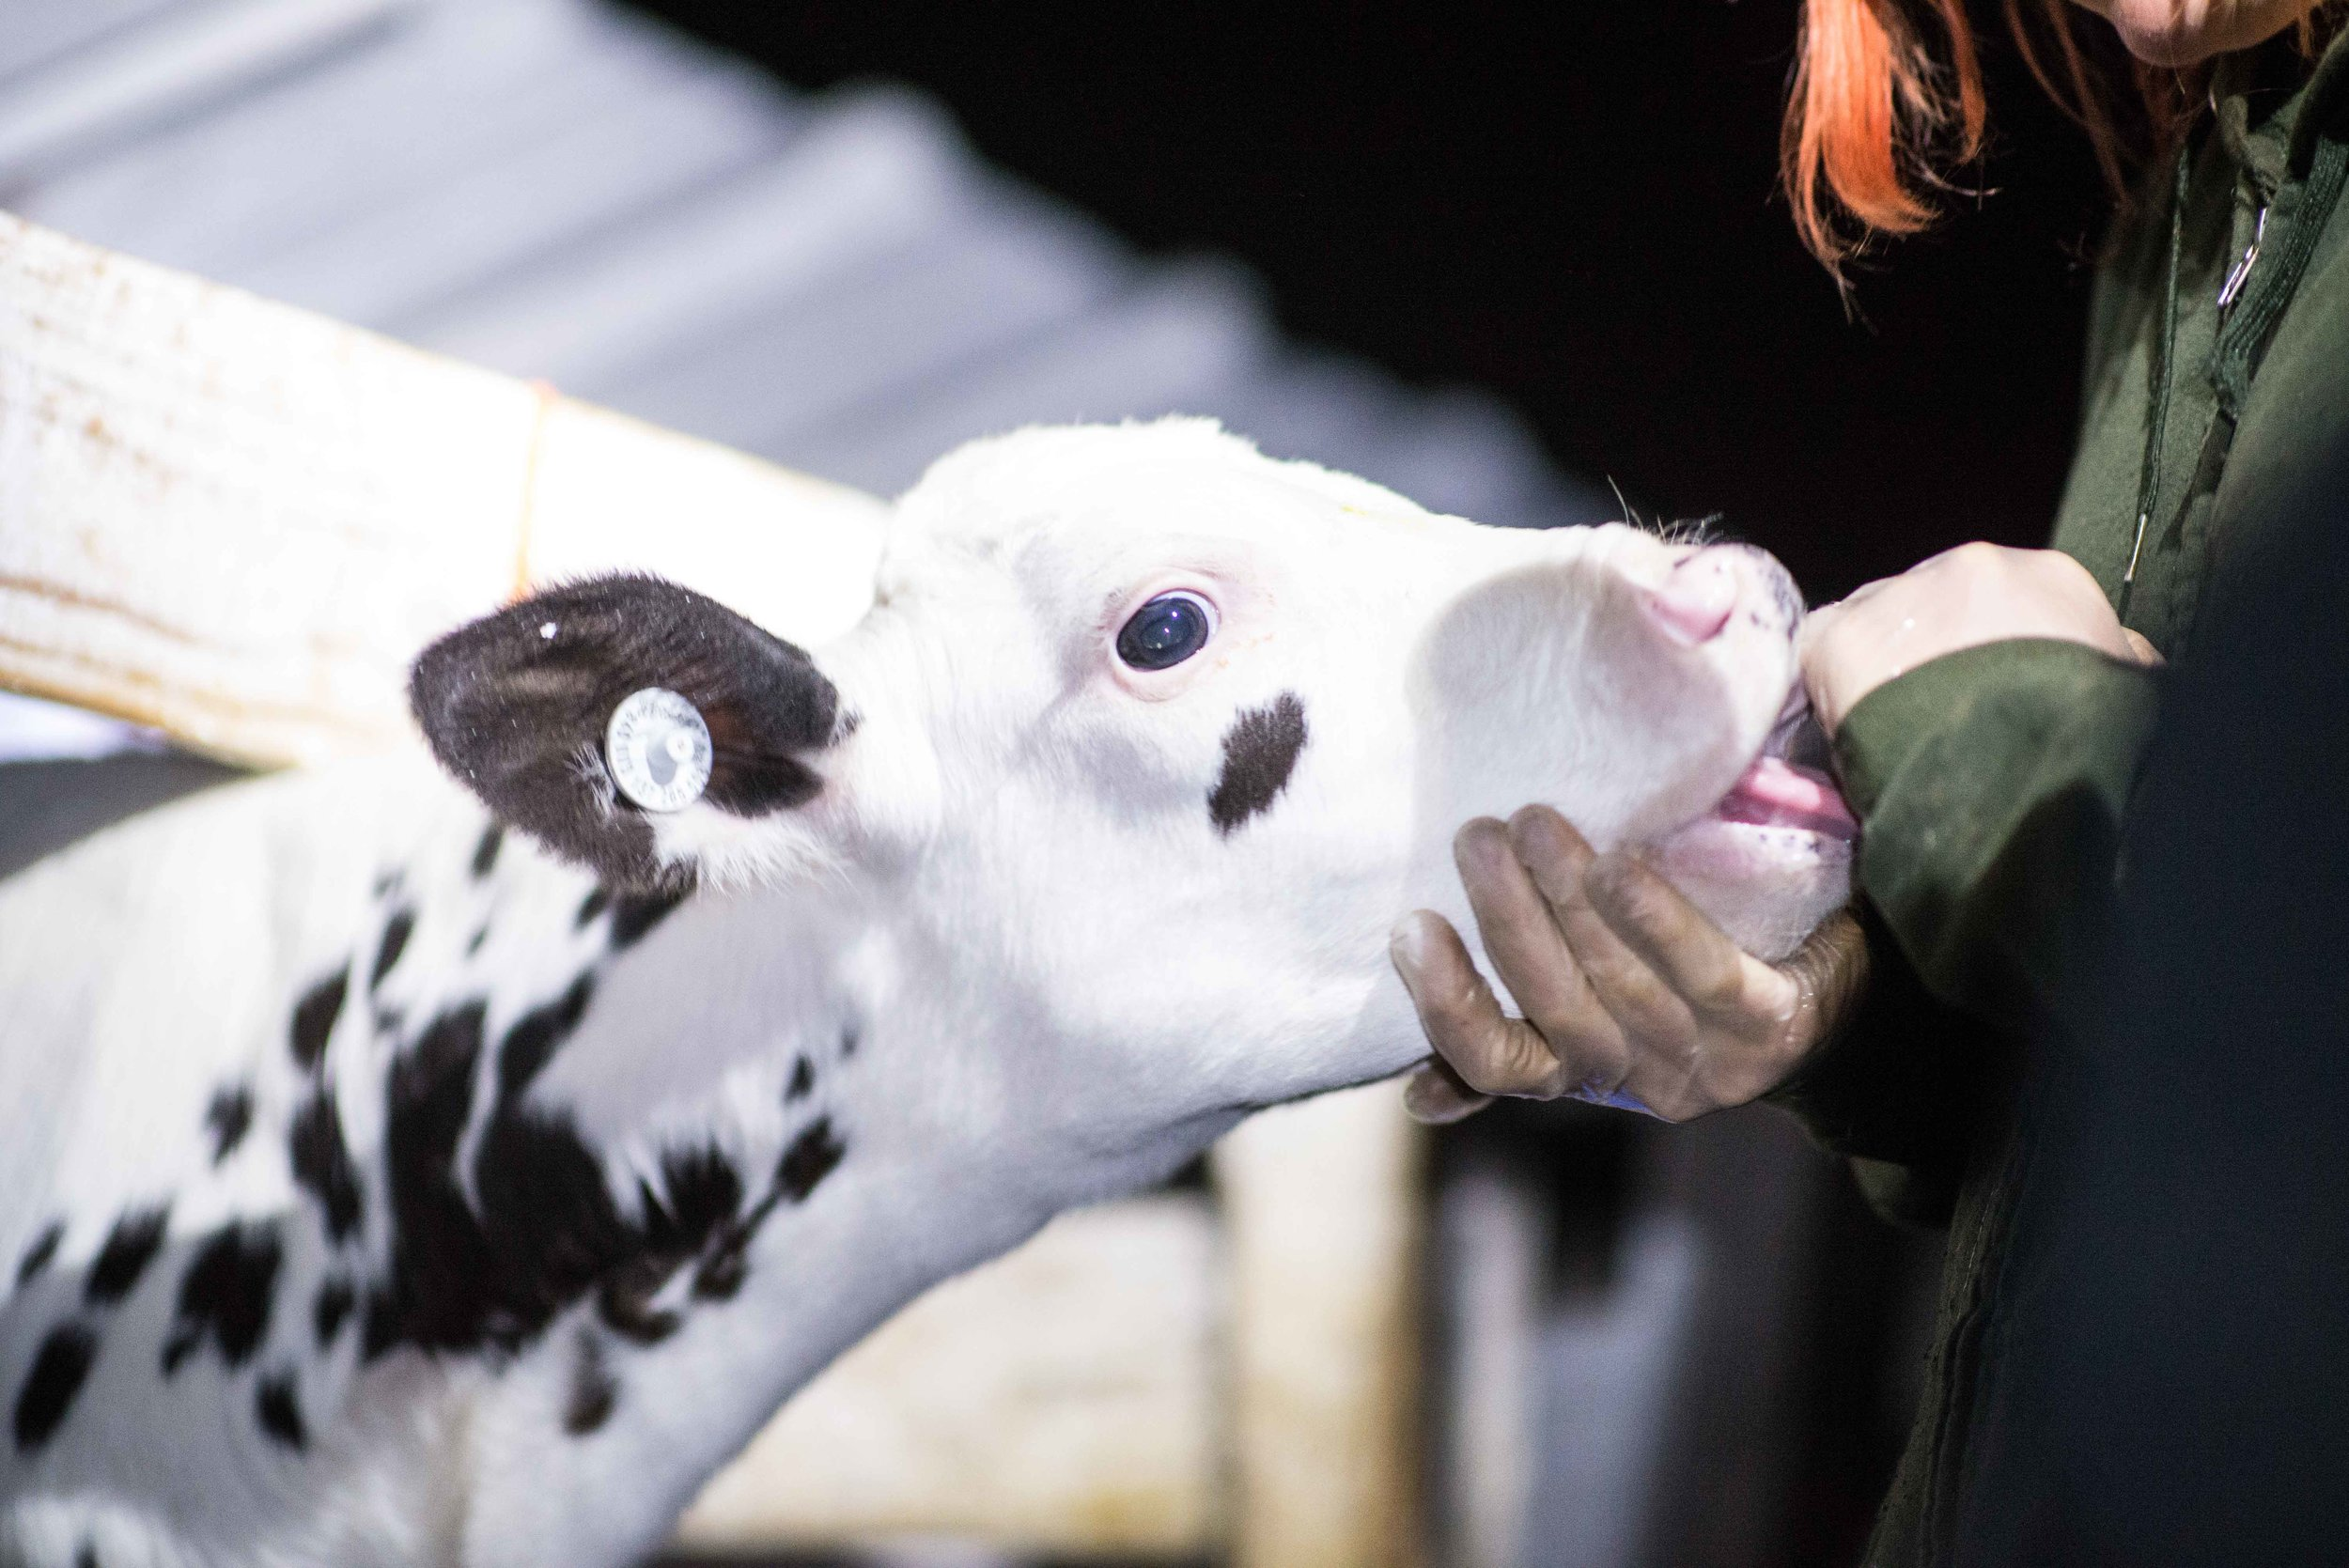 Calves were so desperate for contact for their mothers that they suckled on the fingers of the investigatory team